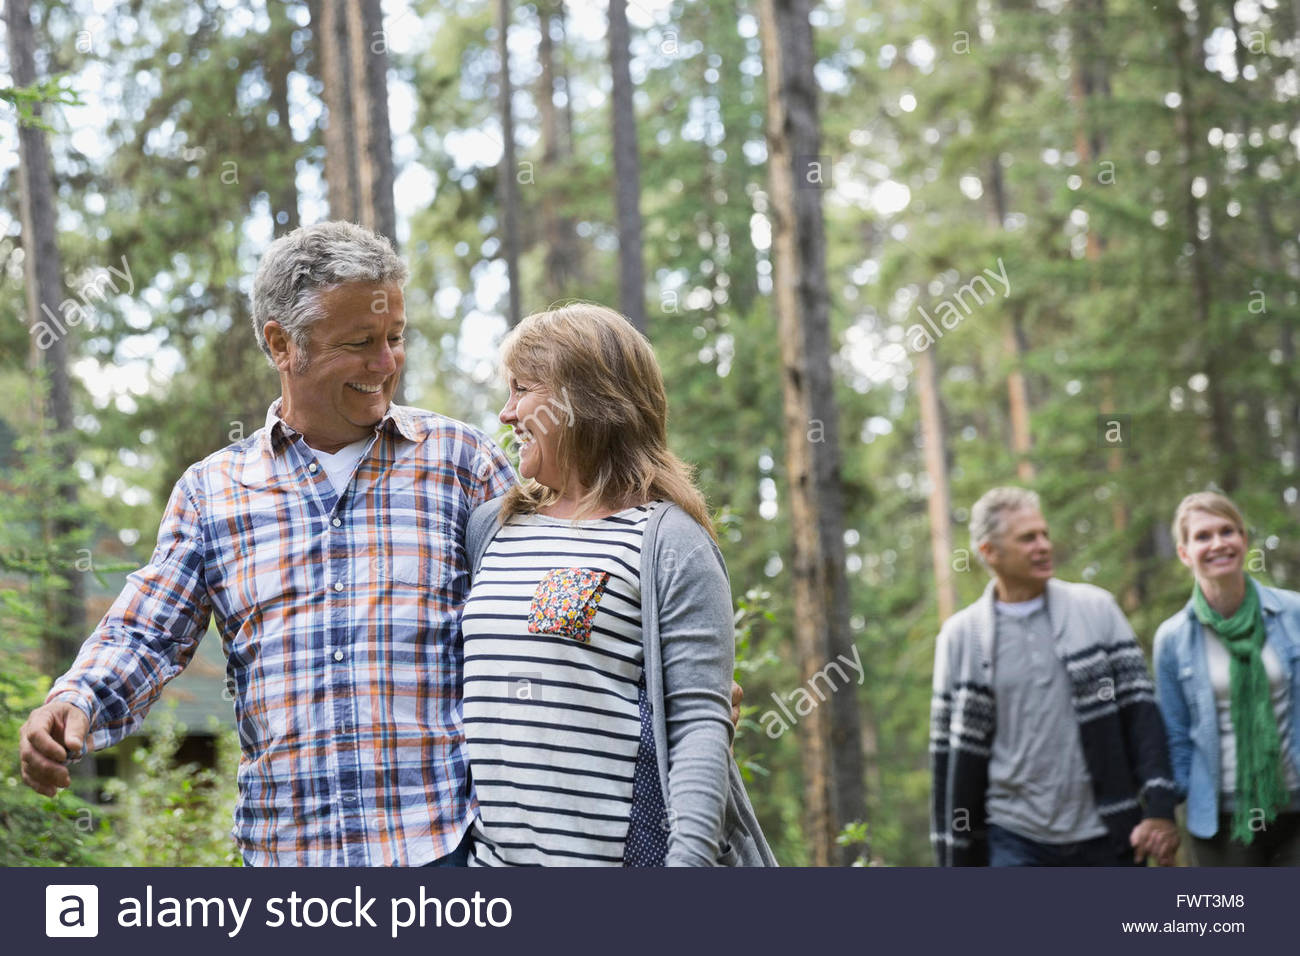 Smiling middle-aged couple walking in the forest - Stock Image